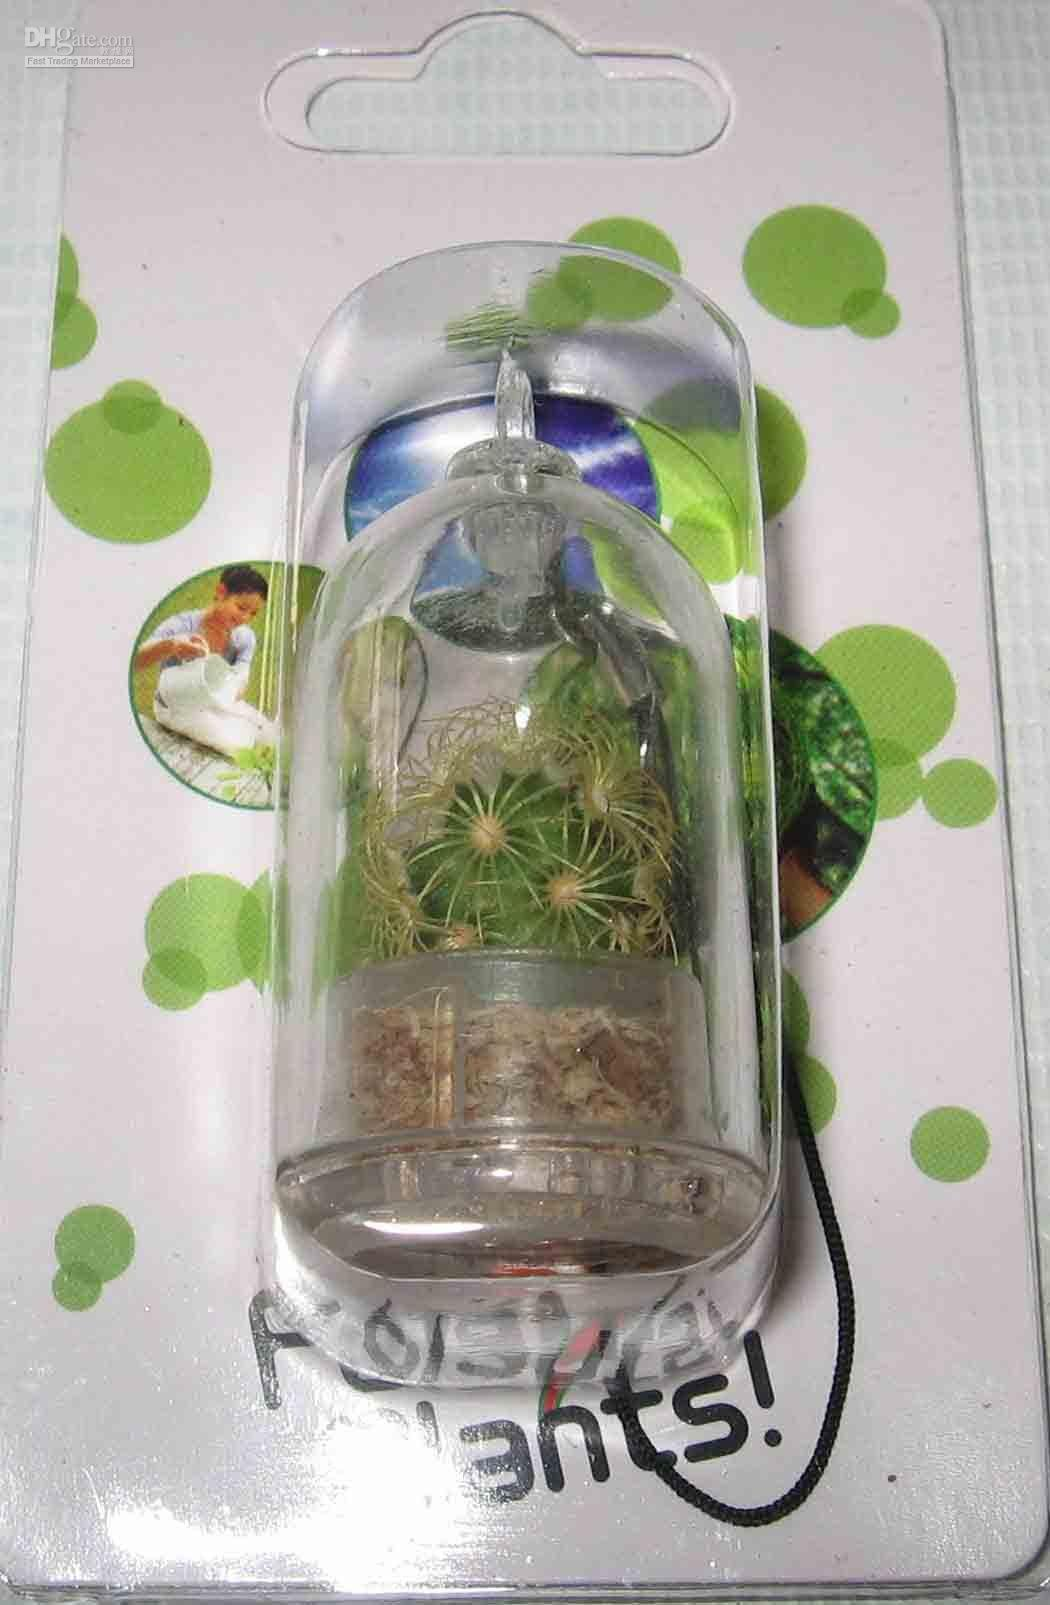 Wholesale Hot selling X pet plant PET TREES Plant selection Mobile Phone Charm cell phone straps keyring